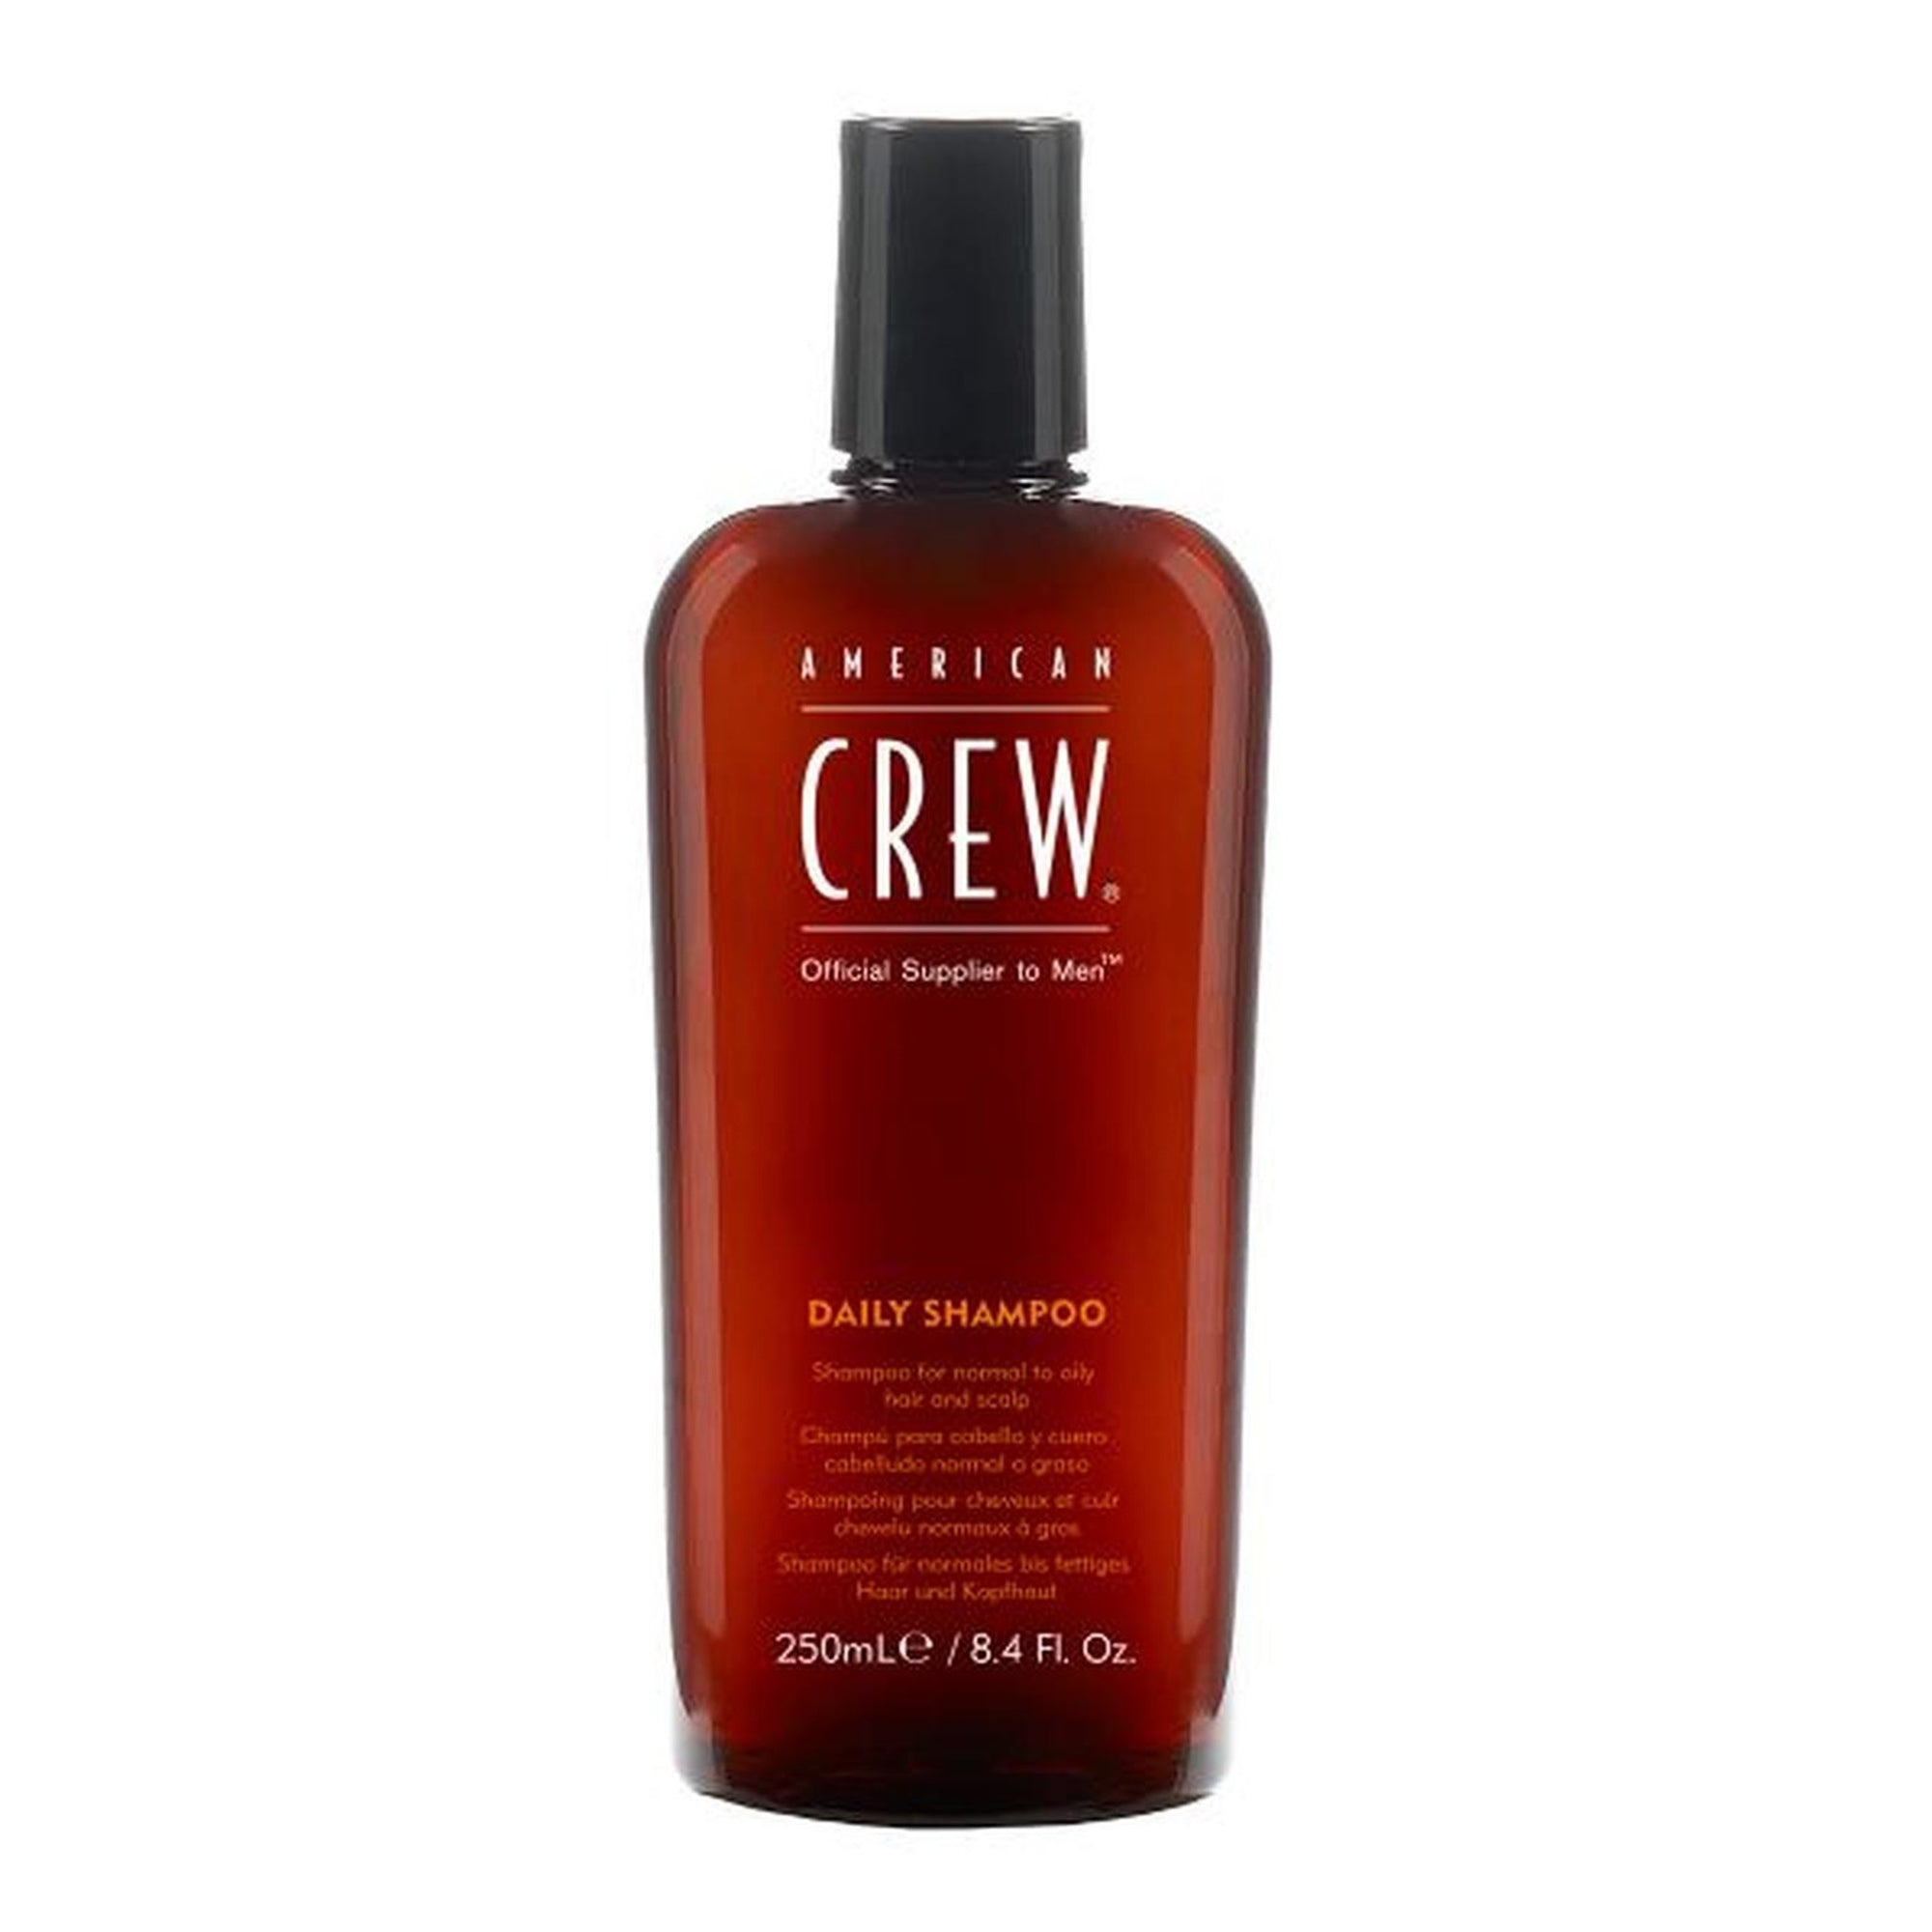 American Crew 3In1 Shampoo, Conditioner & Body Wash 250Ml